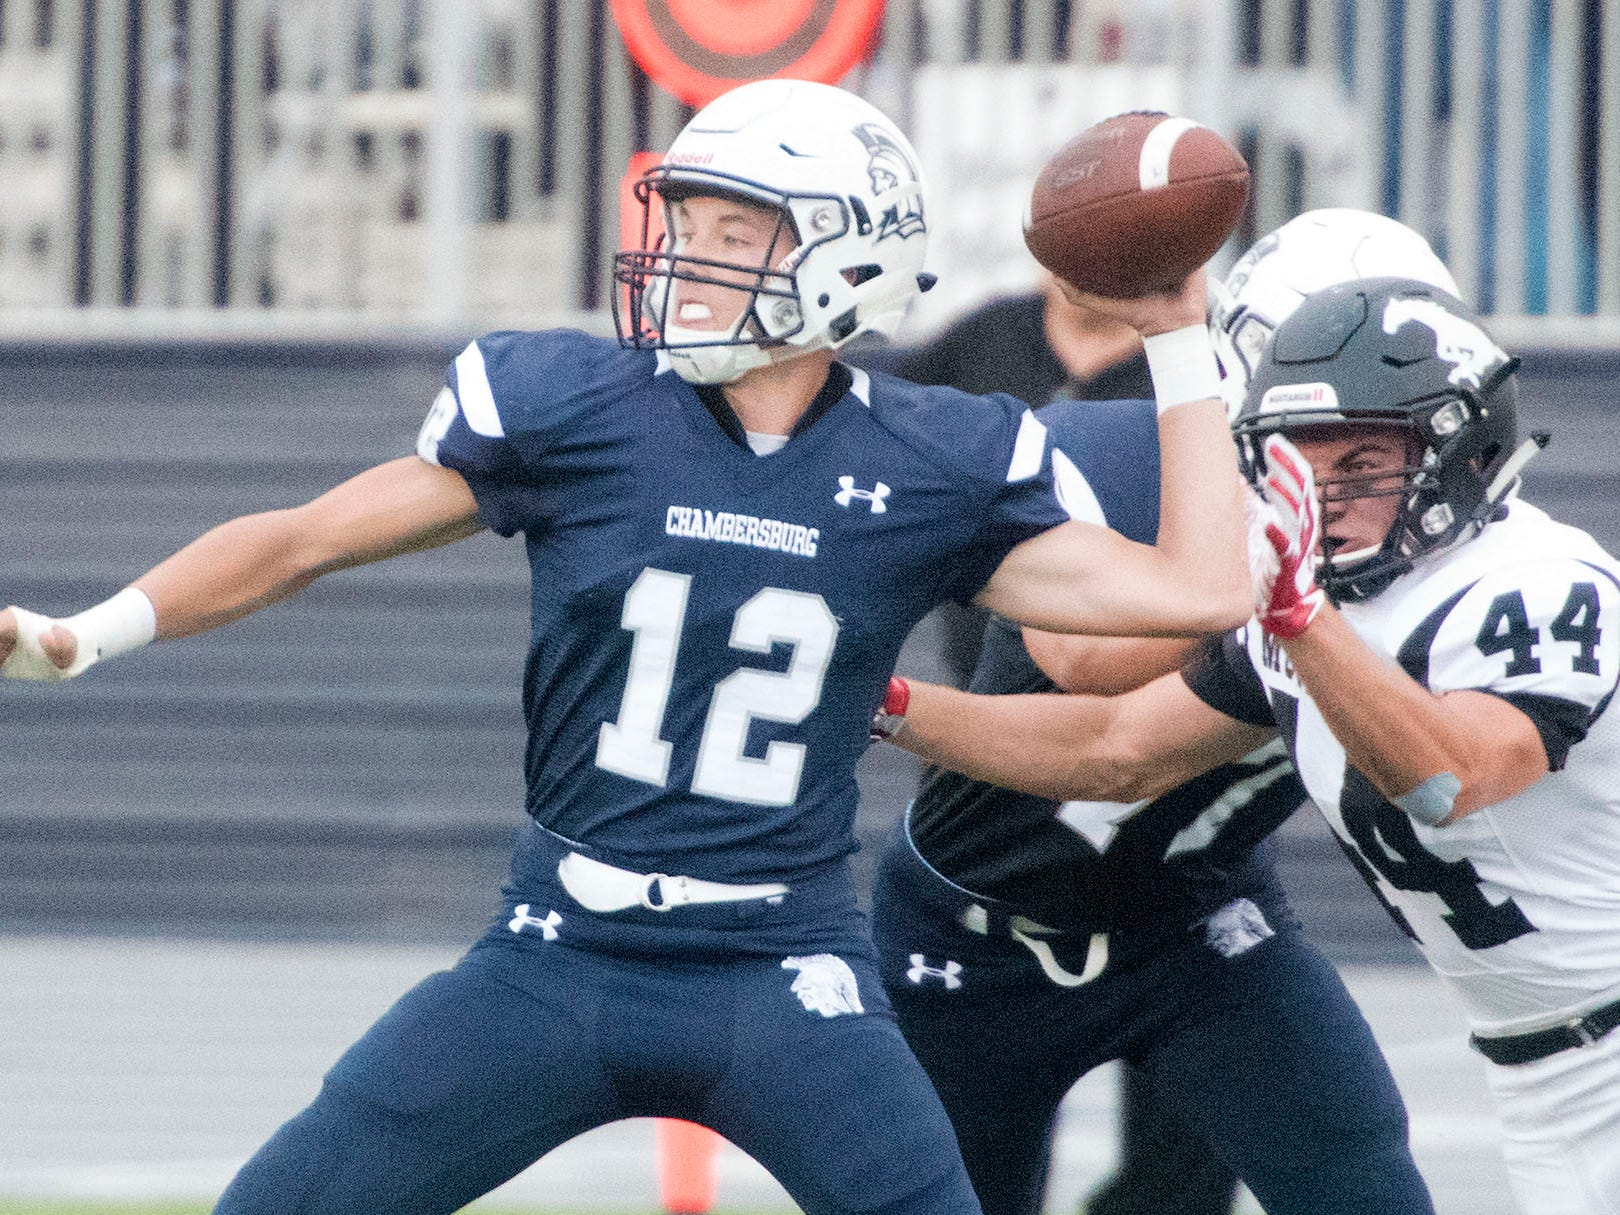 Chambersburg's Brady Stumbaugh drops back to pass while pressured by South Western's Ryan Sheehan (44). Chambersburg defeated South Western 51-26 in football on Friday, Aug. 31, 2018.